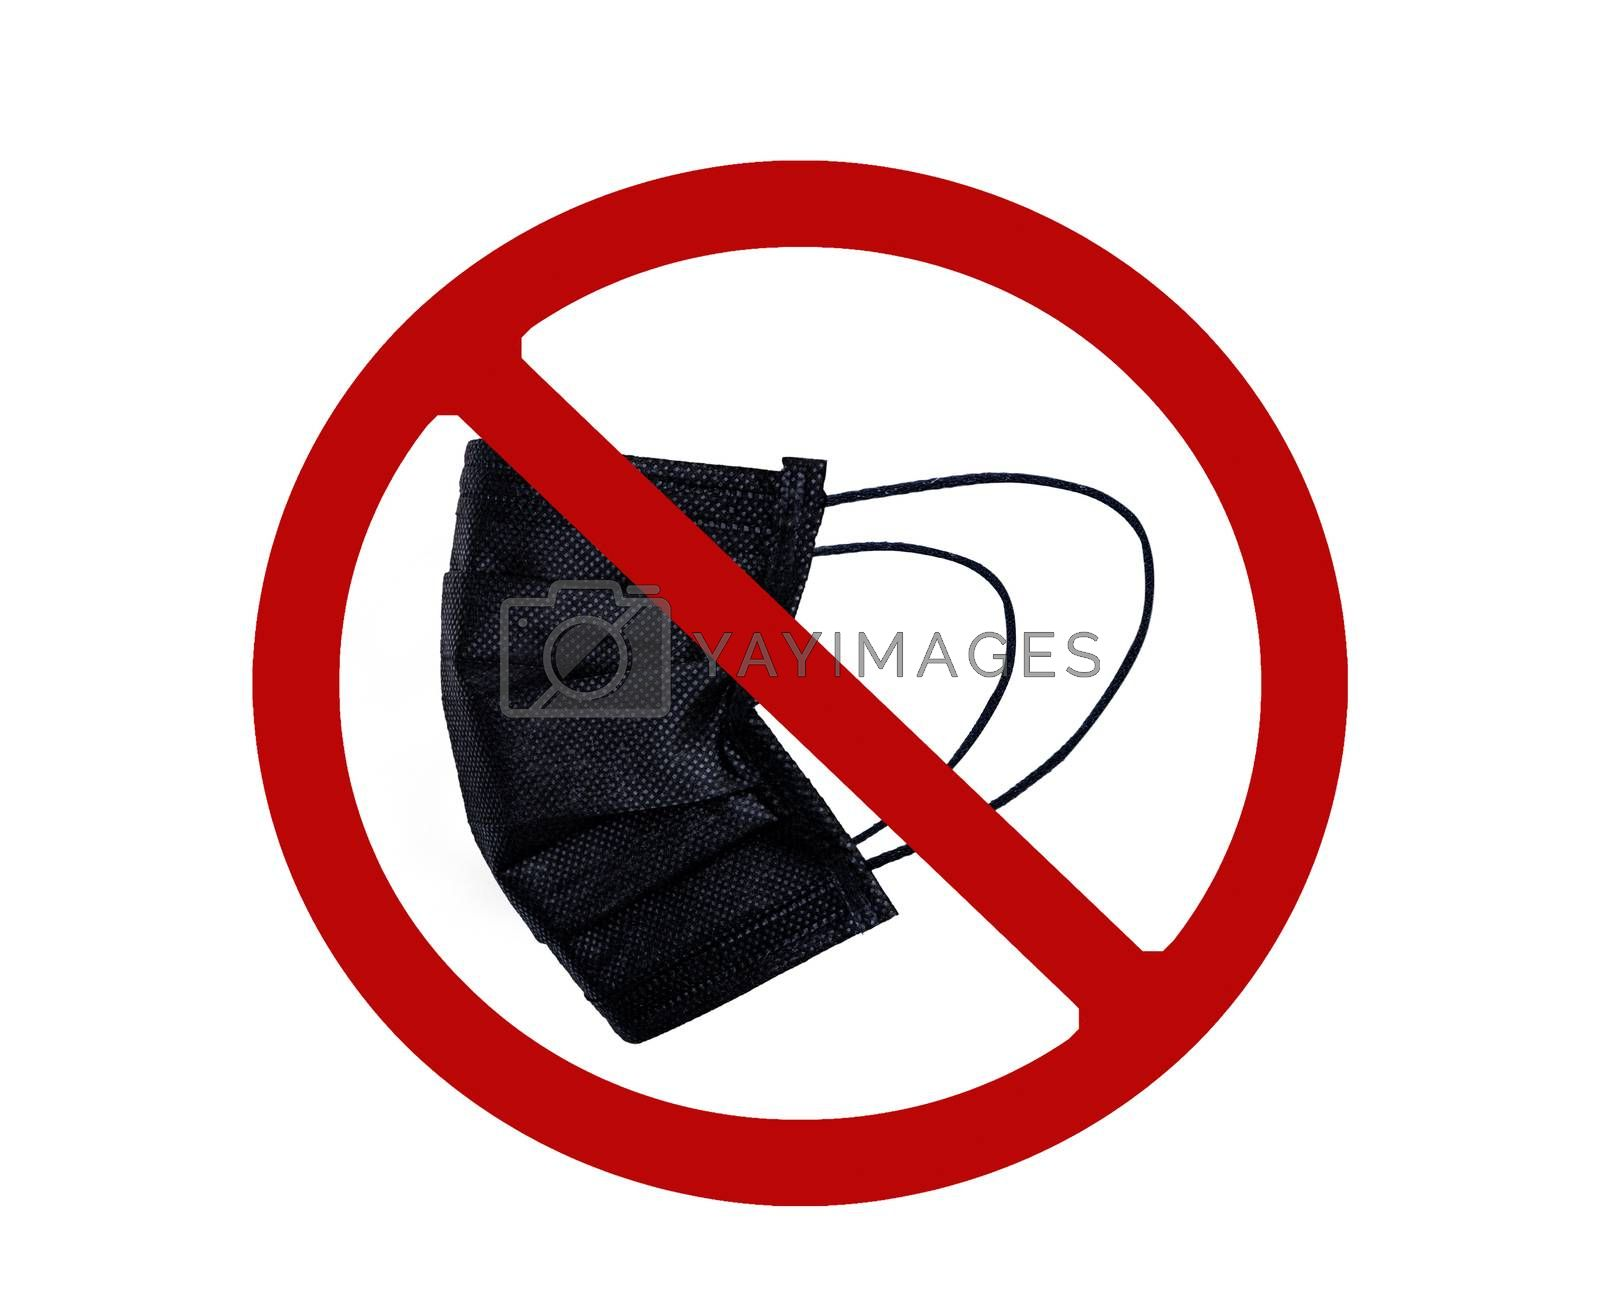 Used black surgical face mask in red forbidden symbol on white background. No discard used medical face mask in this area. Medical waste management with hygienic rule in hospital and community.